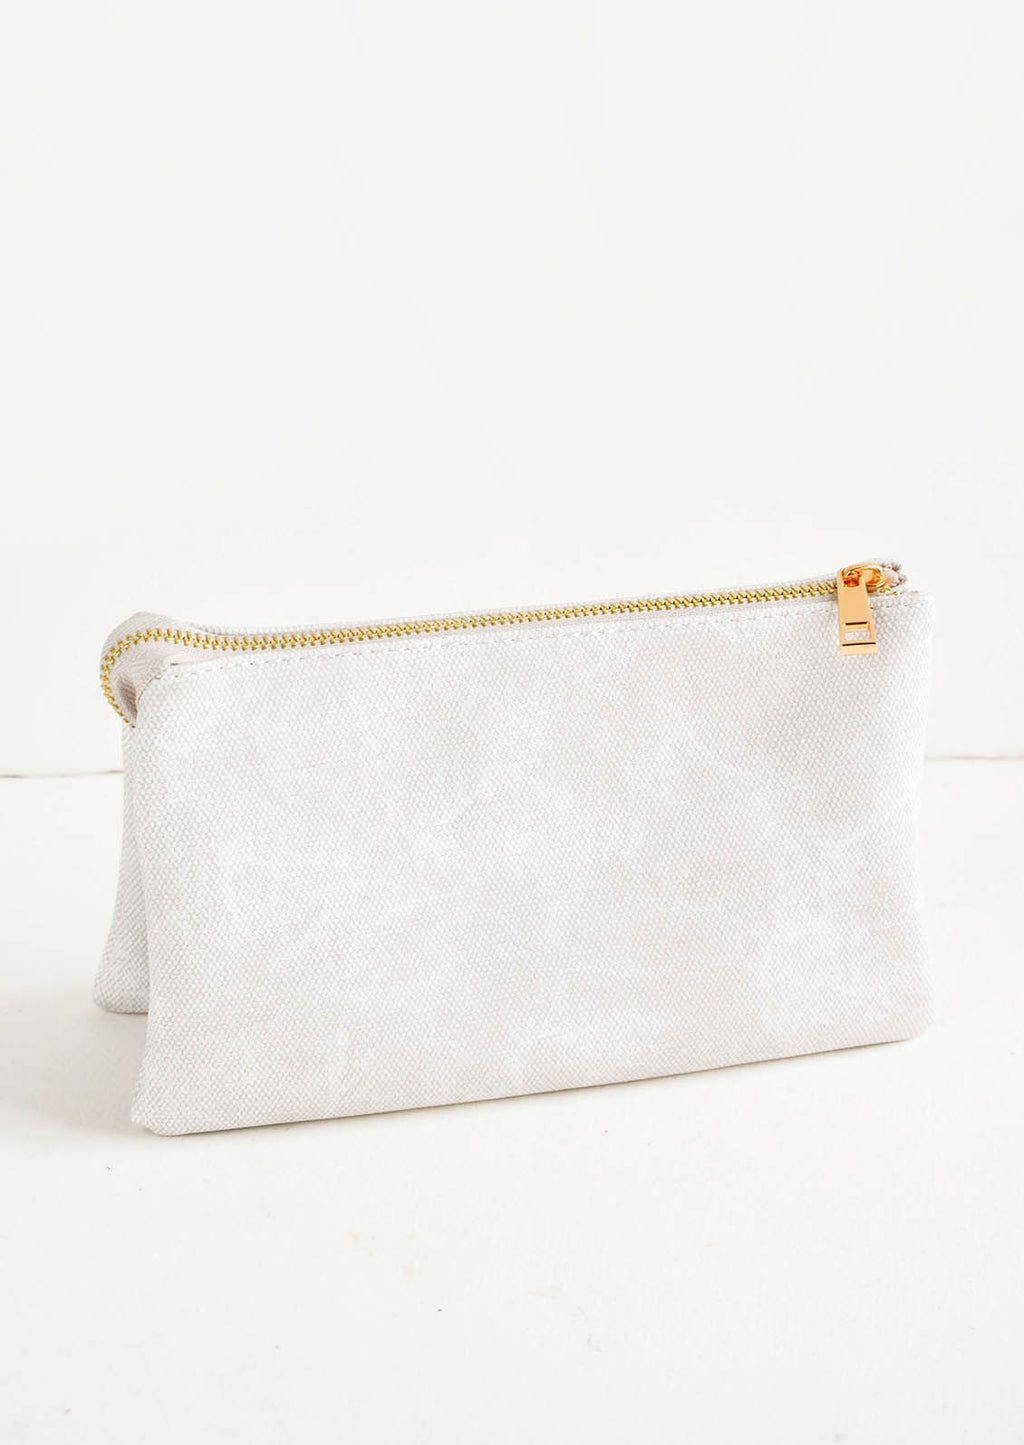 Distressed Grey Canvas: Light grey fabric clutch purse featuring two attached pouches with gold zipper.